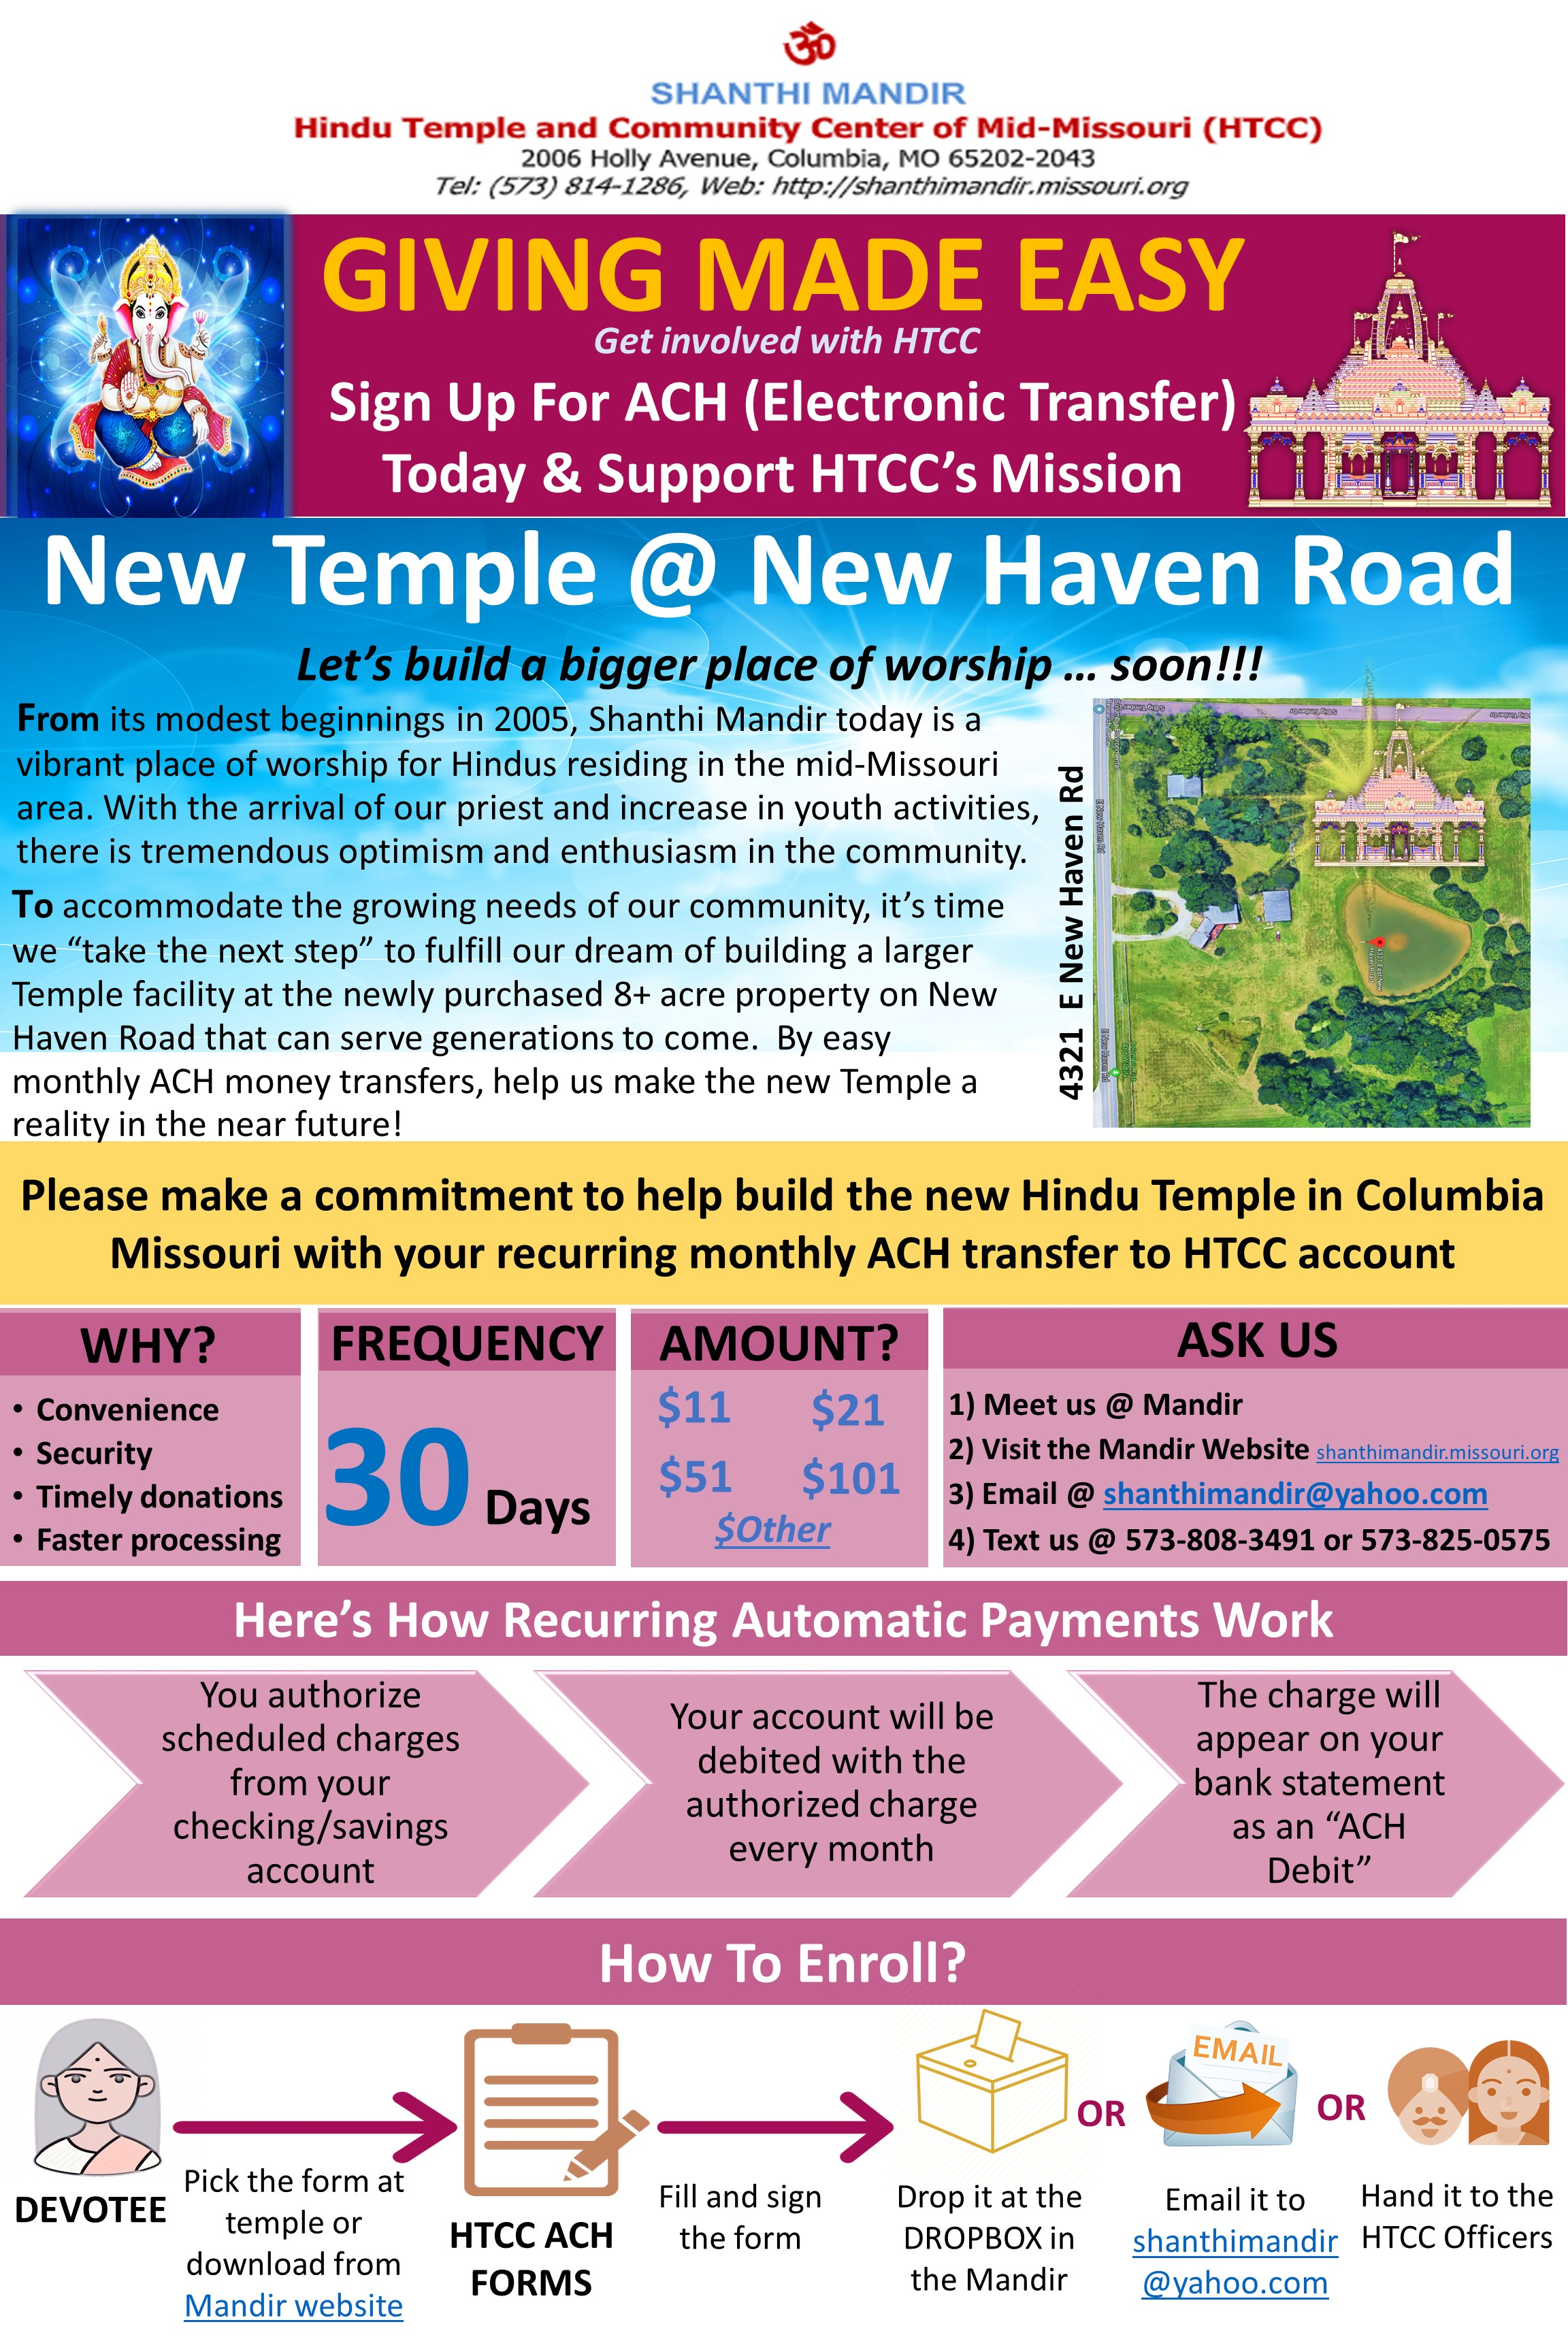 Join the Hindu Temple and Community Center (HTCC) initiative!!